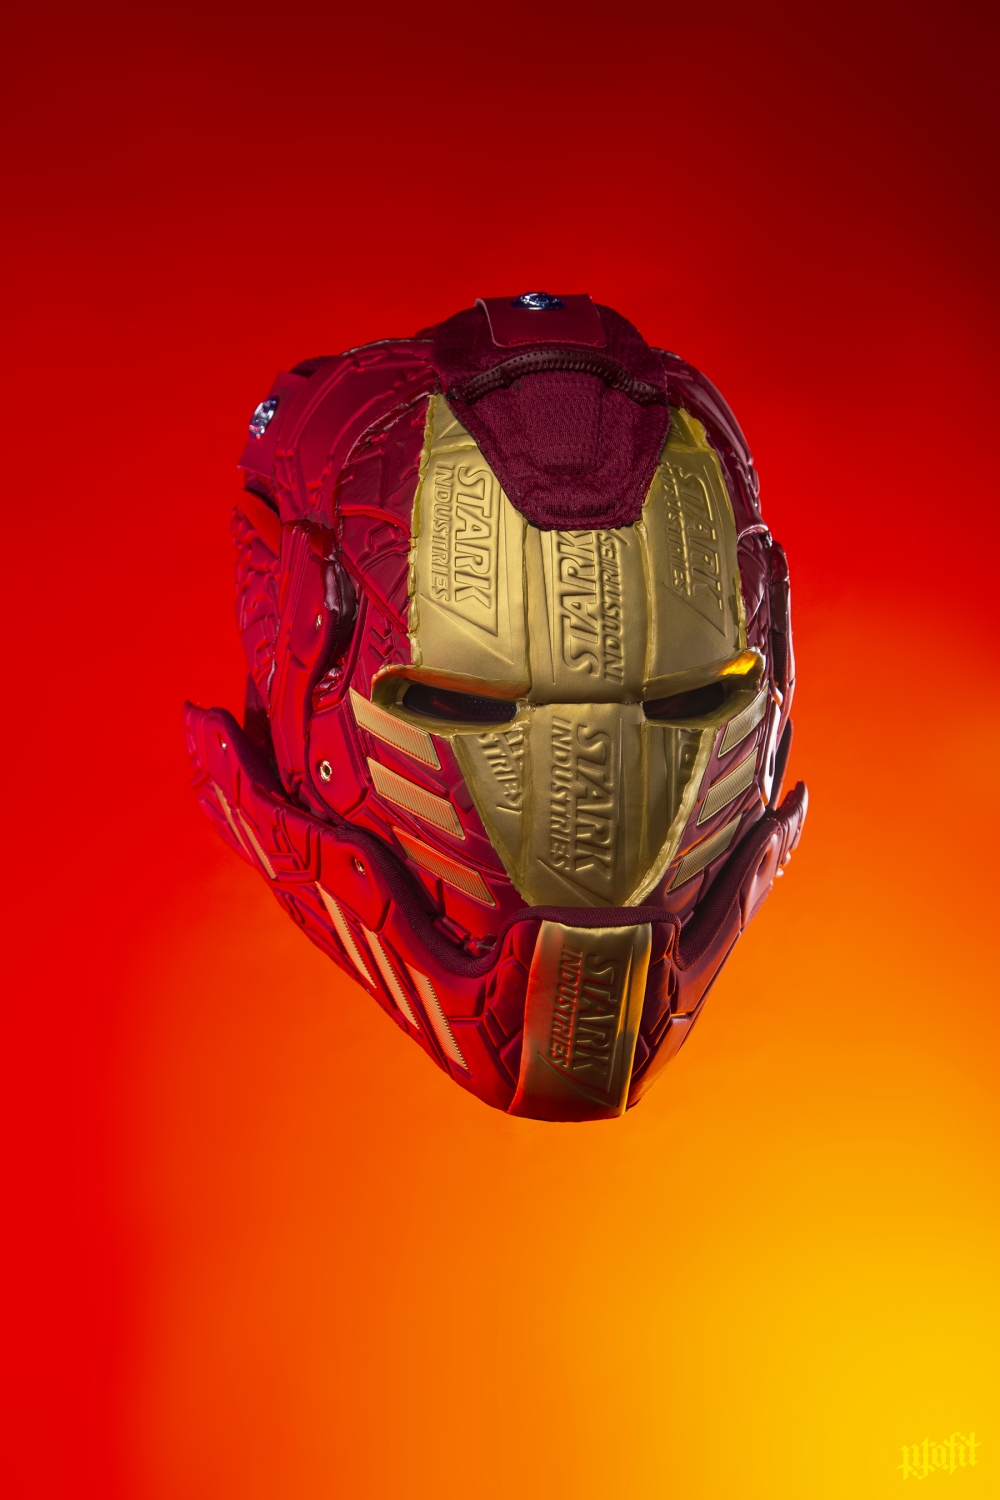 Iron Man sneaker mask by Freehand Profit